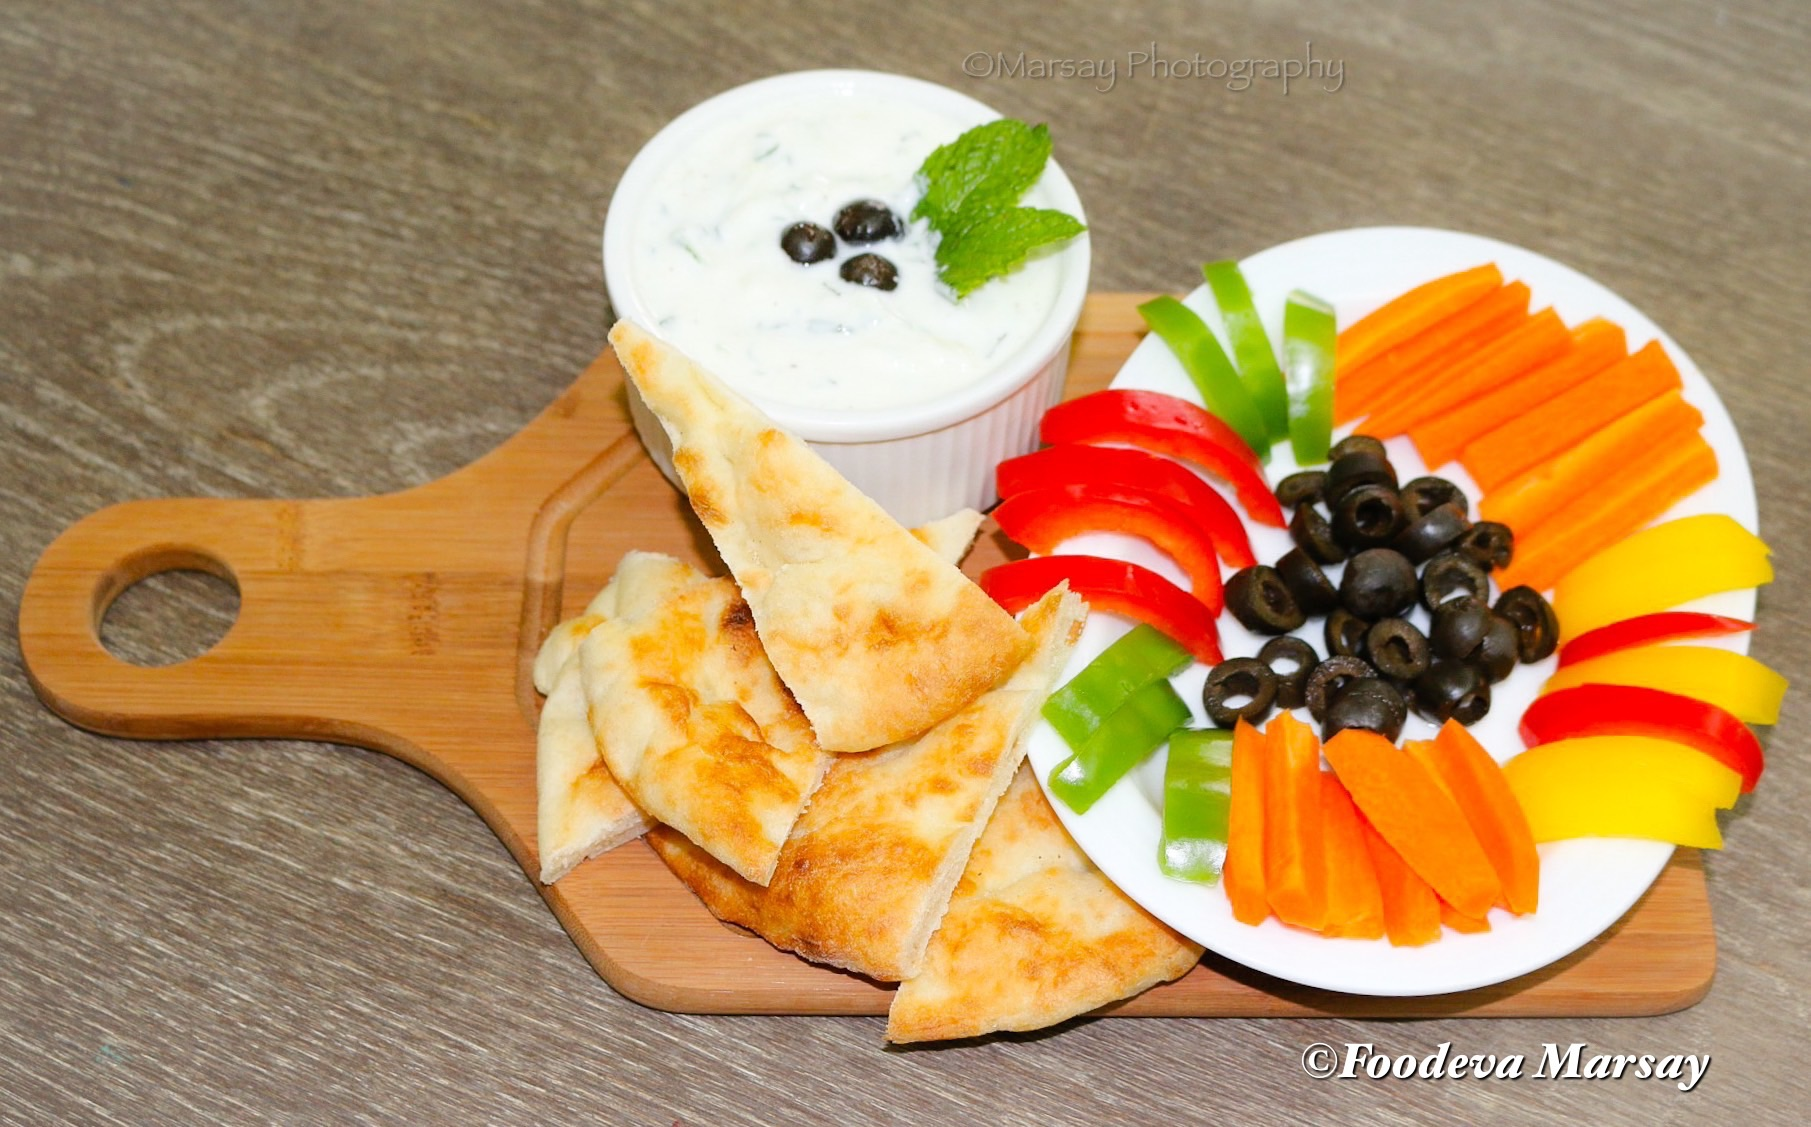 Middle Eastern Cucumber Yoghurt Sauce...served here with Arabic Bread and sliced Carrots, olives and sliced peppers